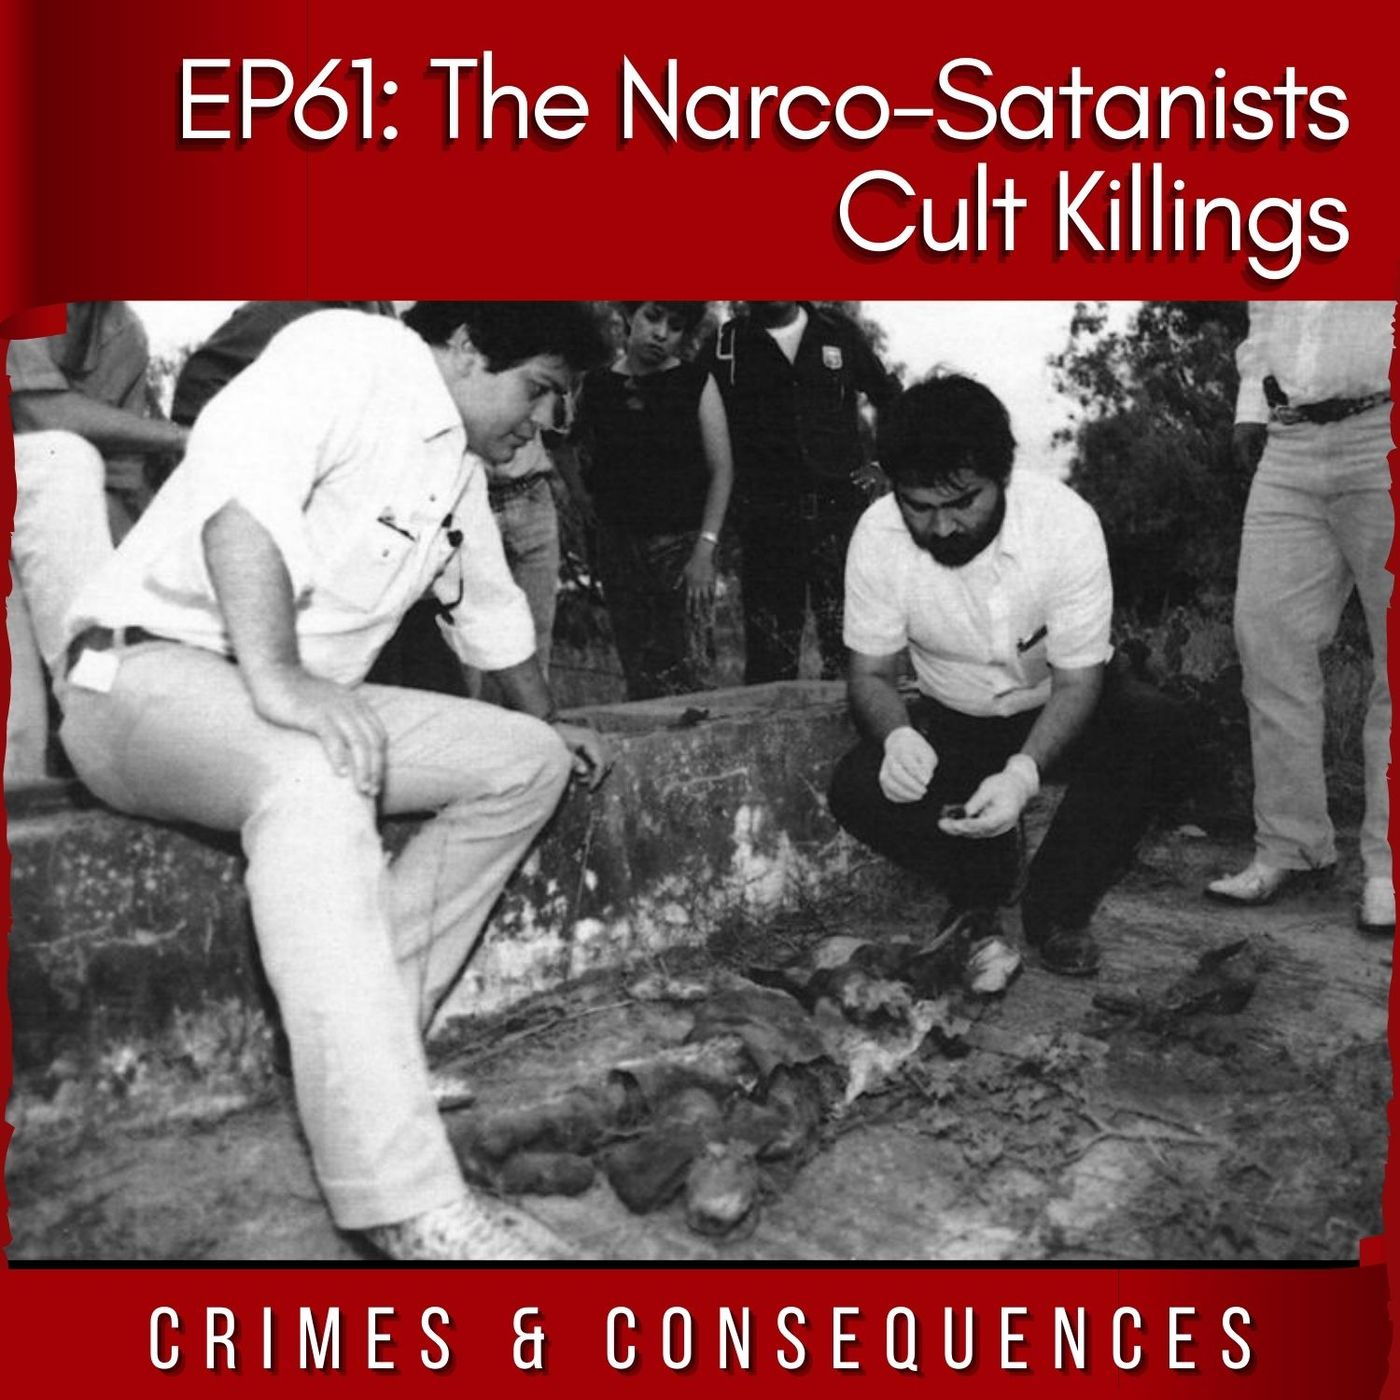 EP61:The Narco-Satanist Cult Killings